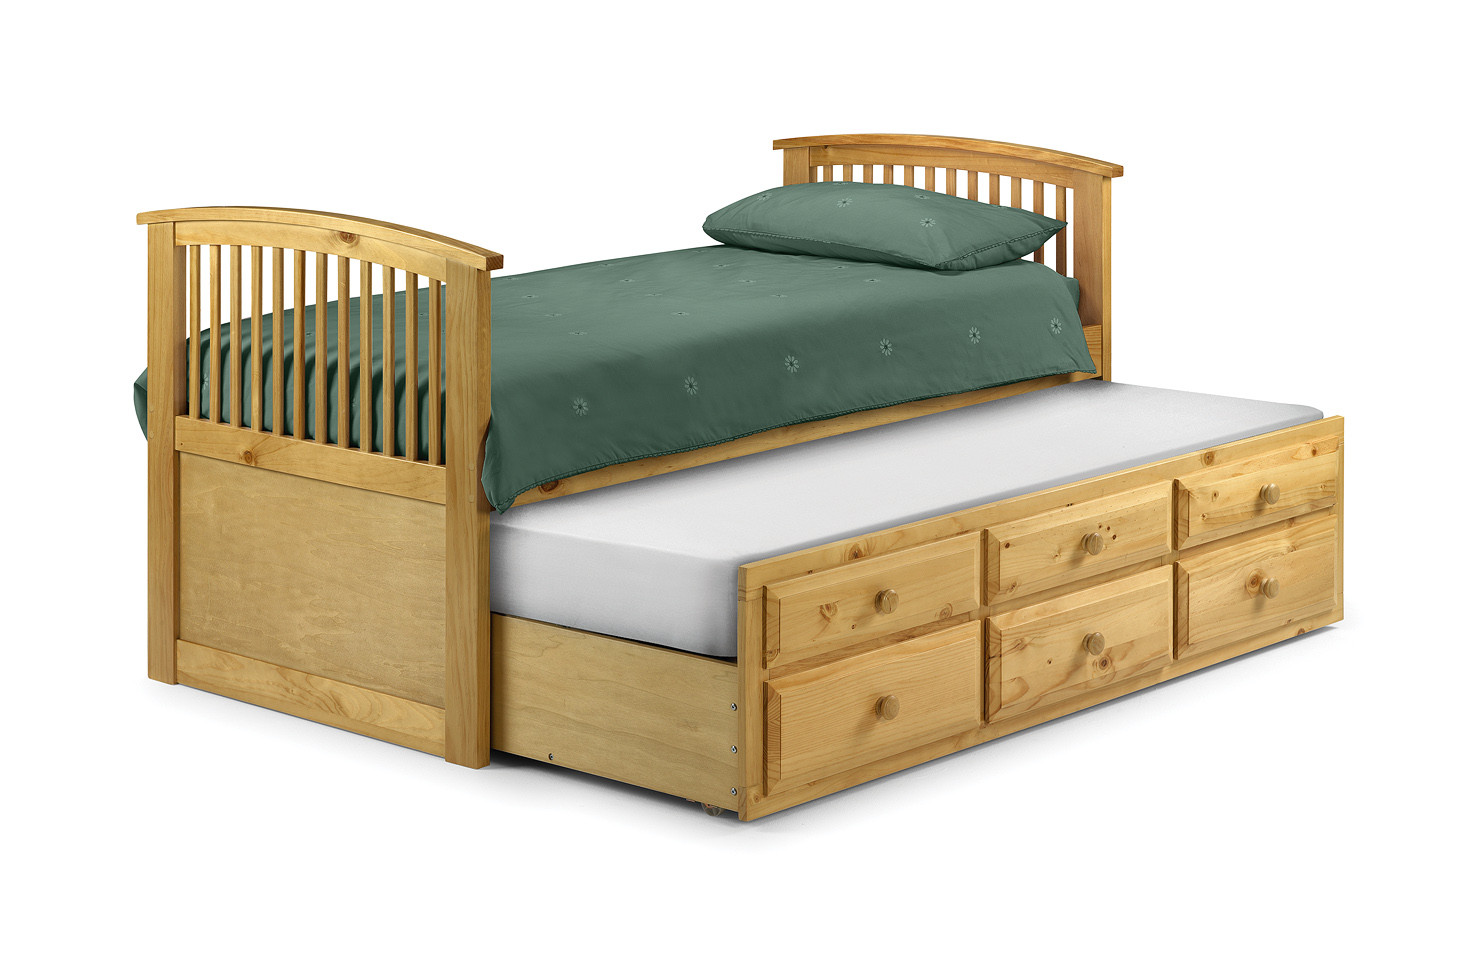 lulu a trundle is m electronics bunkbed furniture what lease photo computers white product own to bedroom youth appliances and from better bed